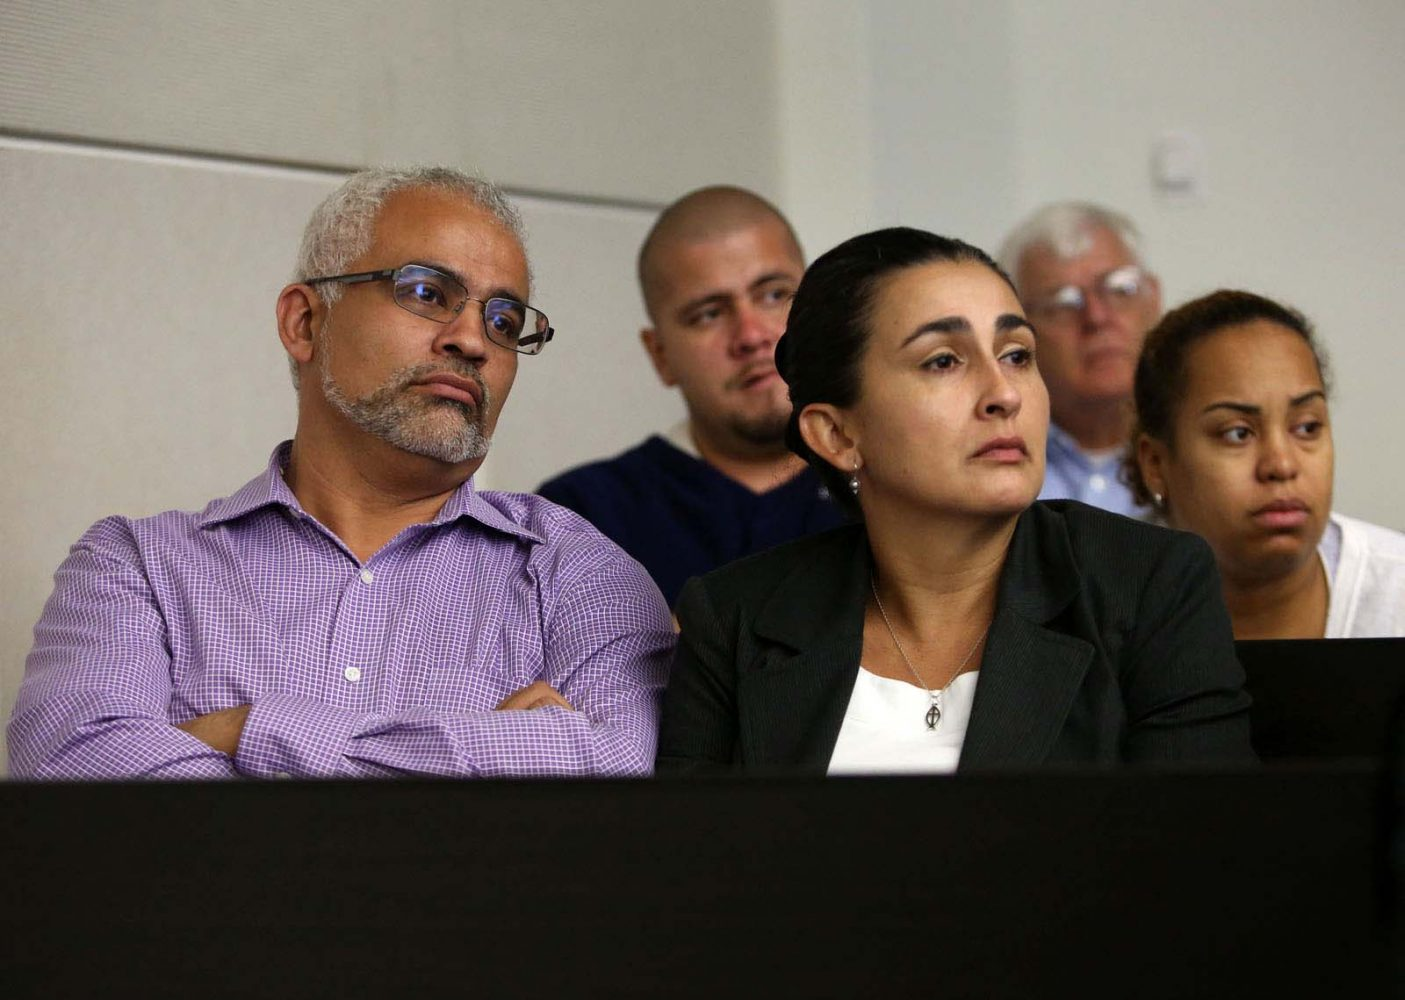 Carlos and Claudia Aguilar, the parents of slain University of Florida student Christian Aguilar, listen to an interview between Pedro Bravo and Gainesville Police Det. Randy Roberts during Bravo's murder trial in courtroom 1B of the Alachua County Criminal Justice Center Monday, August 11, 2014.  Bravo is accused of killing University of Florida student Christian Aguilar.  (Doug Finger/The Gainesville Sun/Pool)